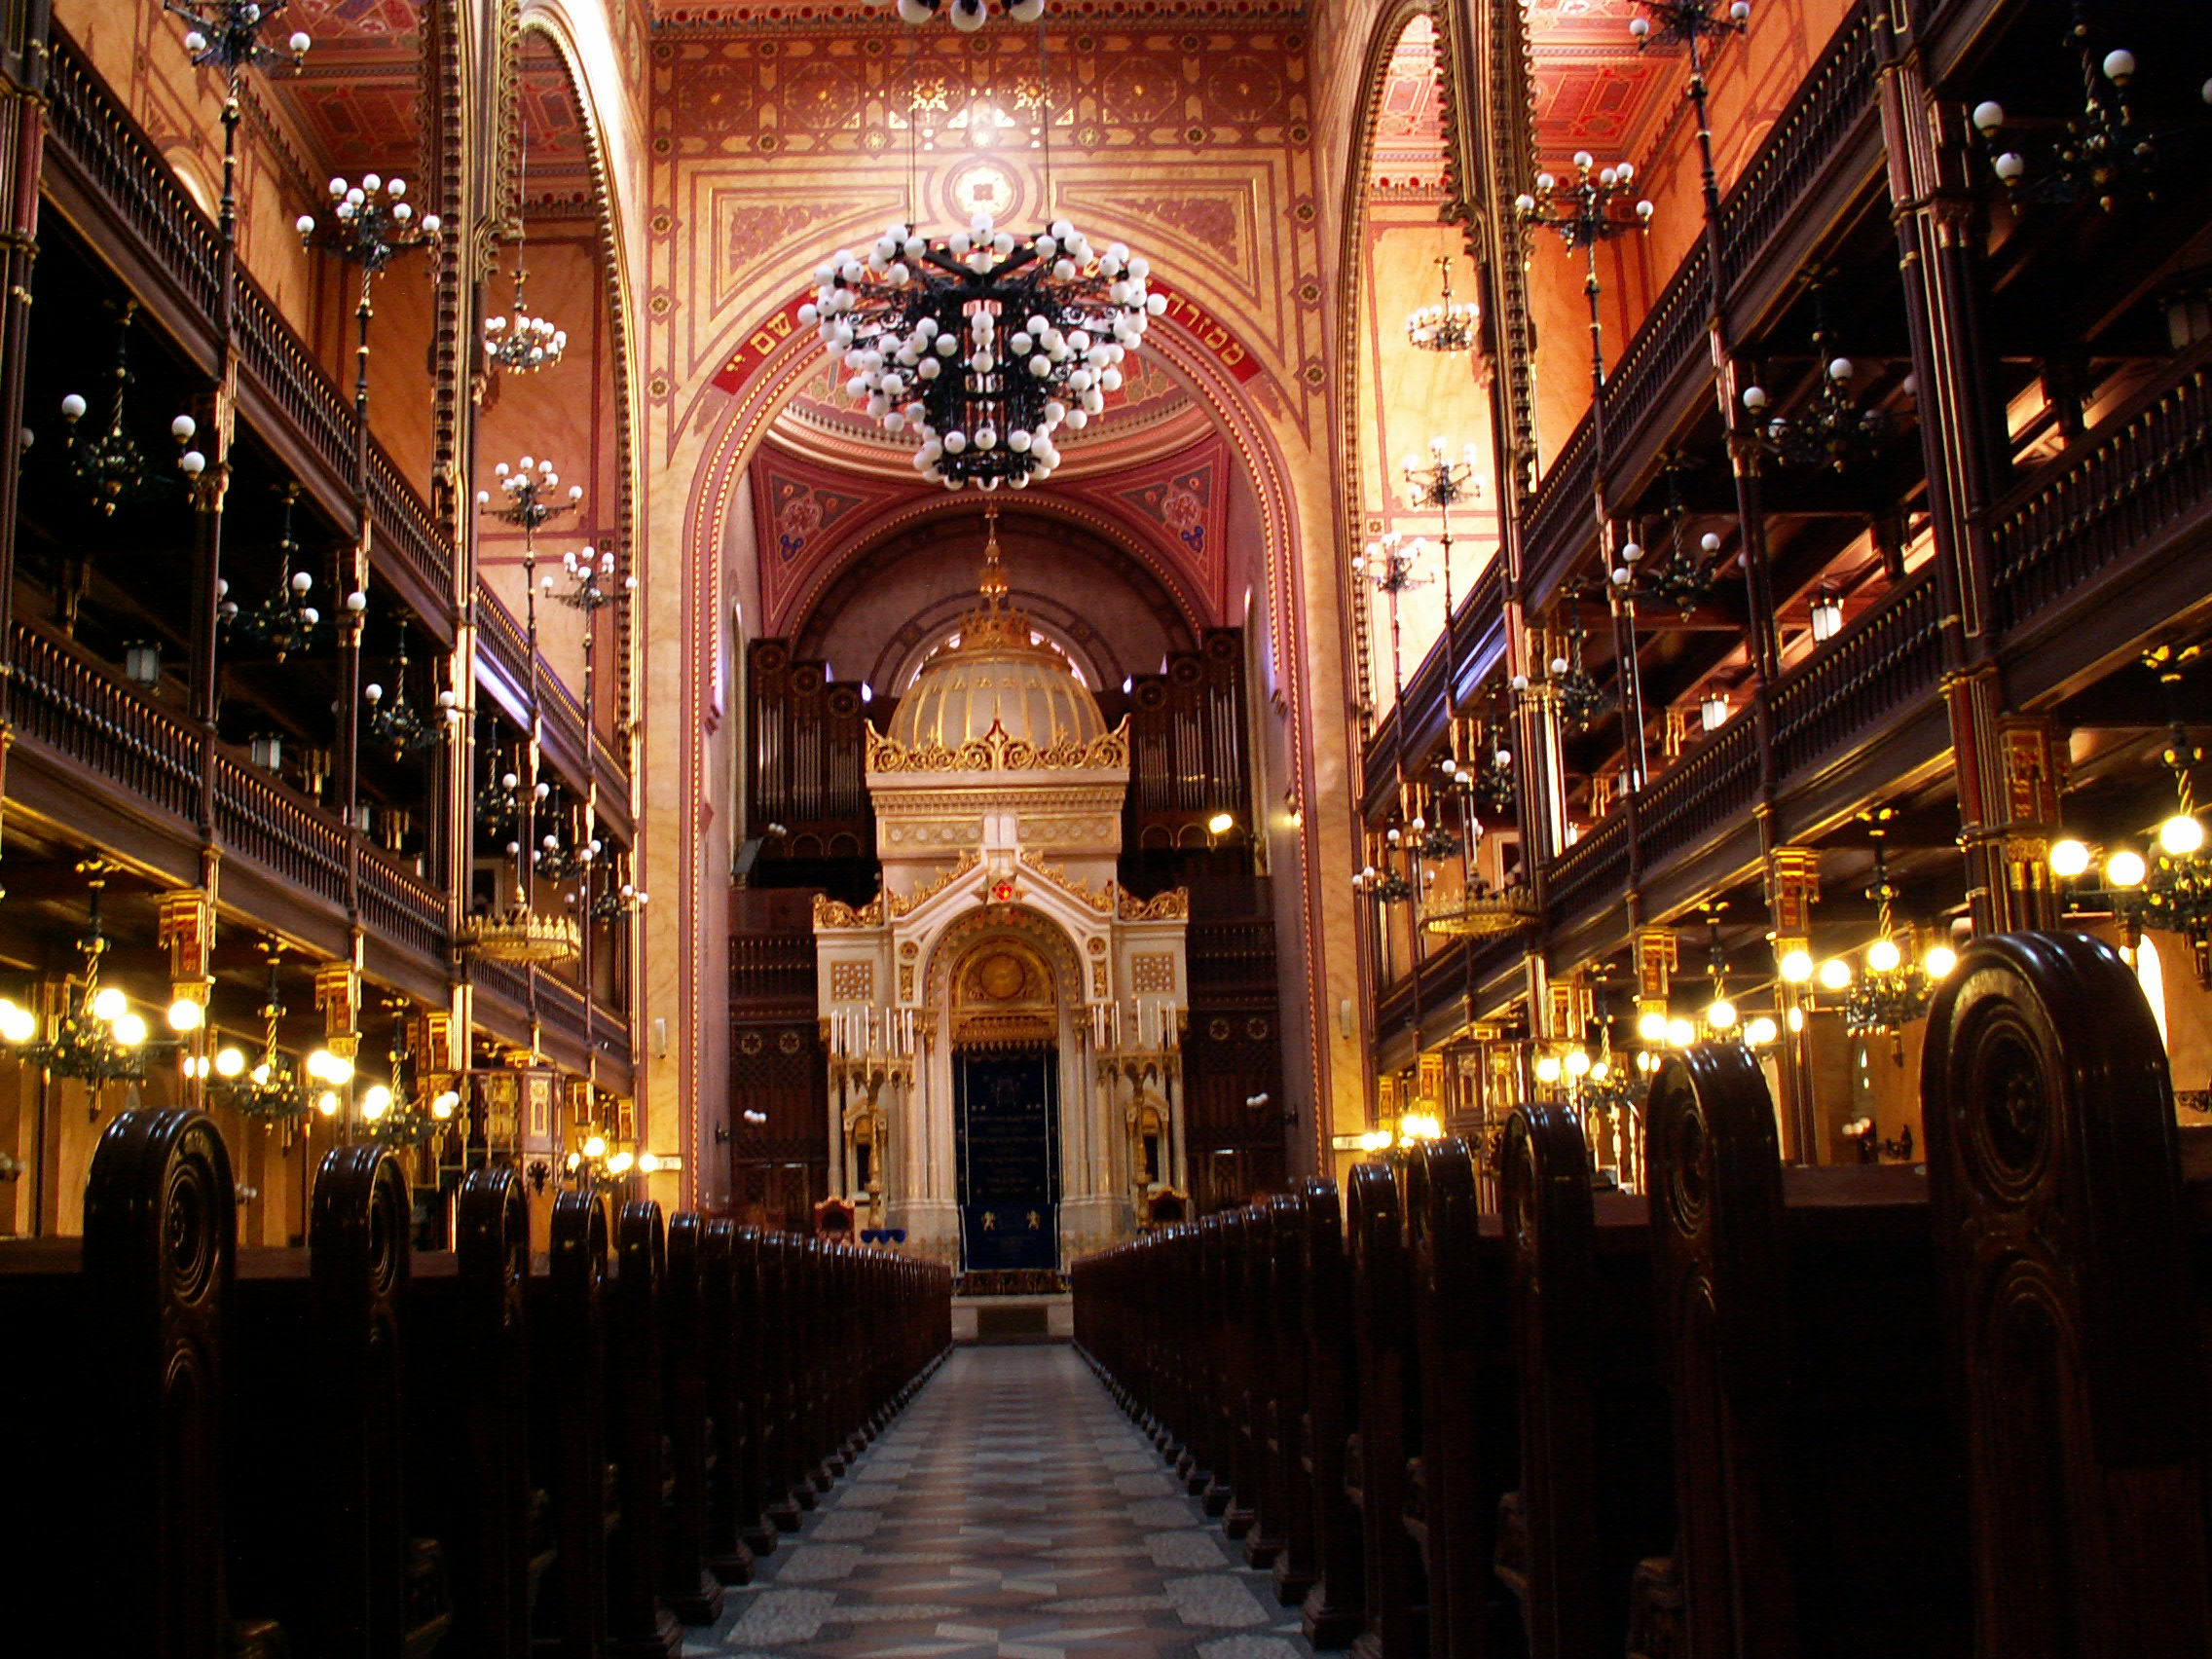 things to do in budapest - Great Synagogue